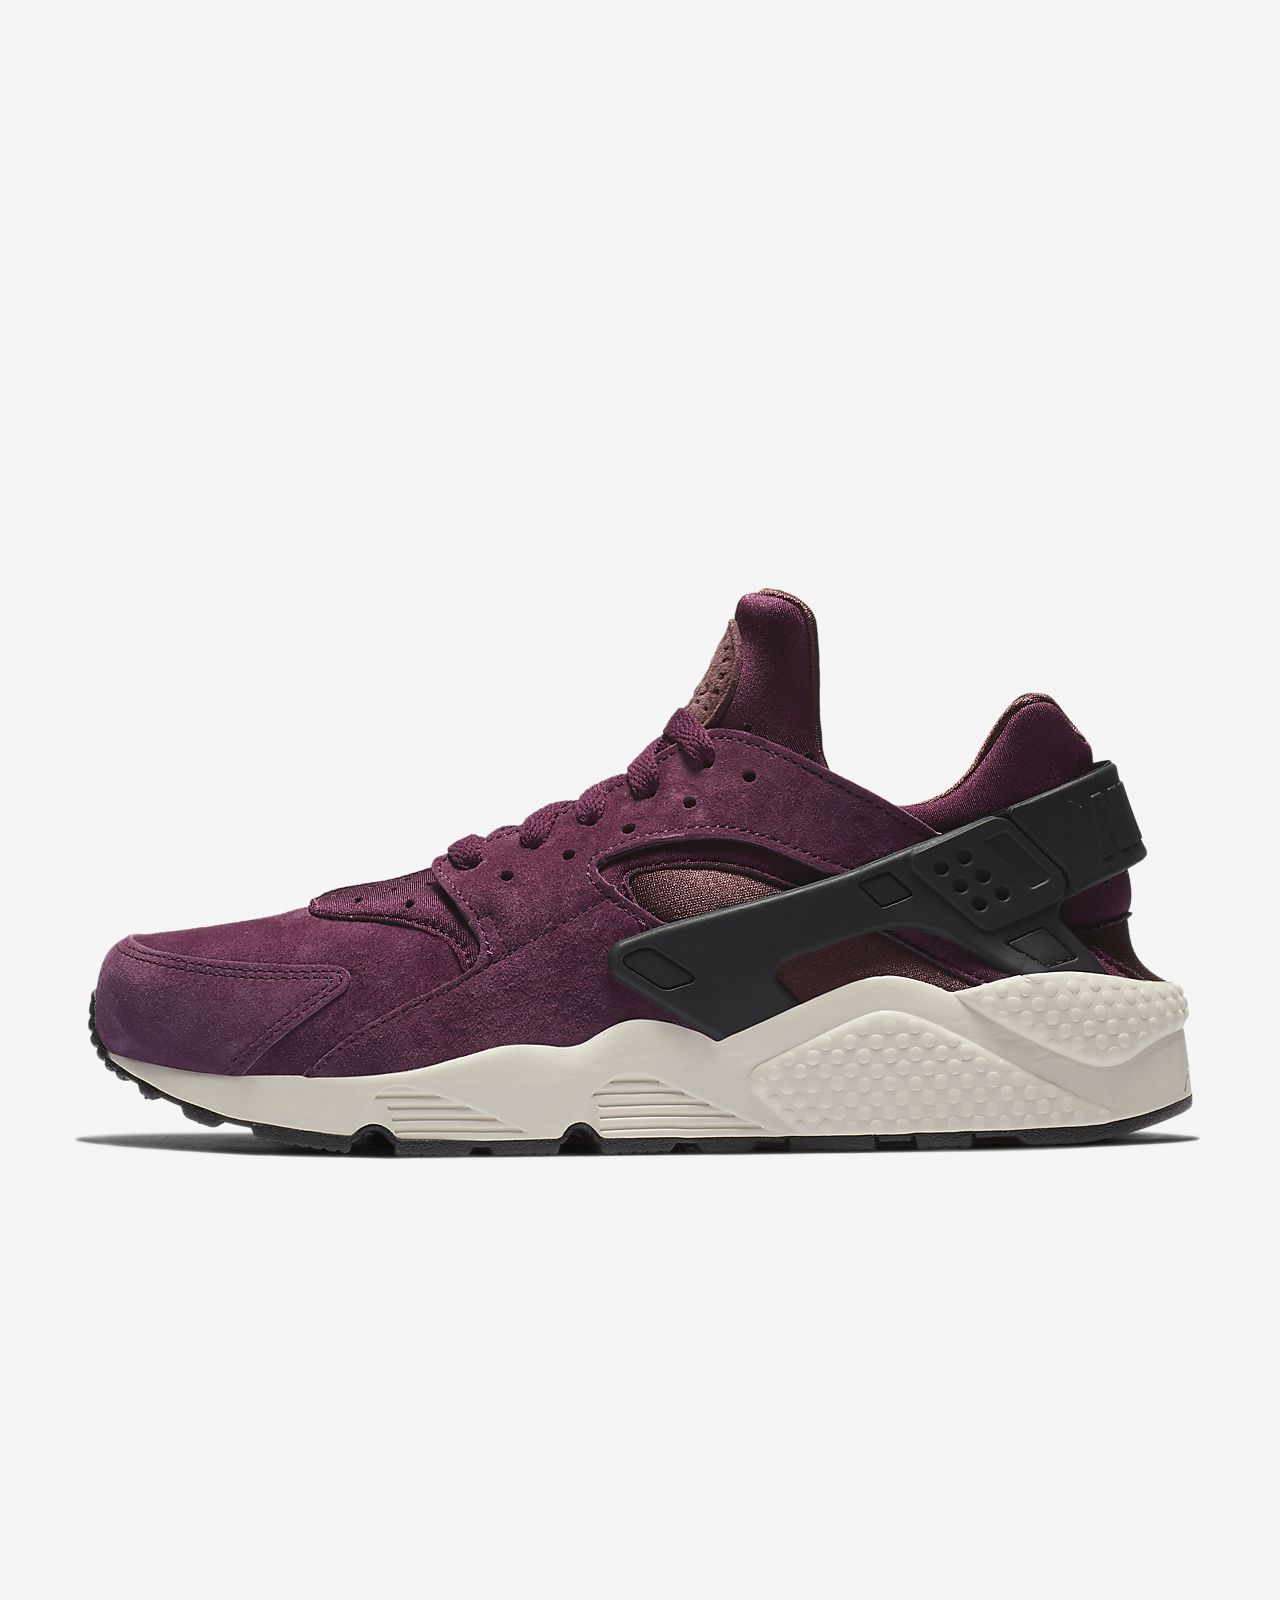 af33df135f3 Nike Air Huarache Premium Men s Shoe. Nike.com